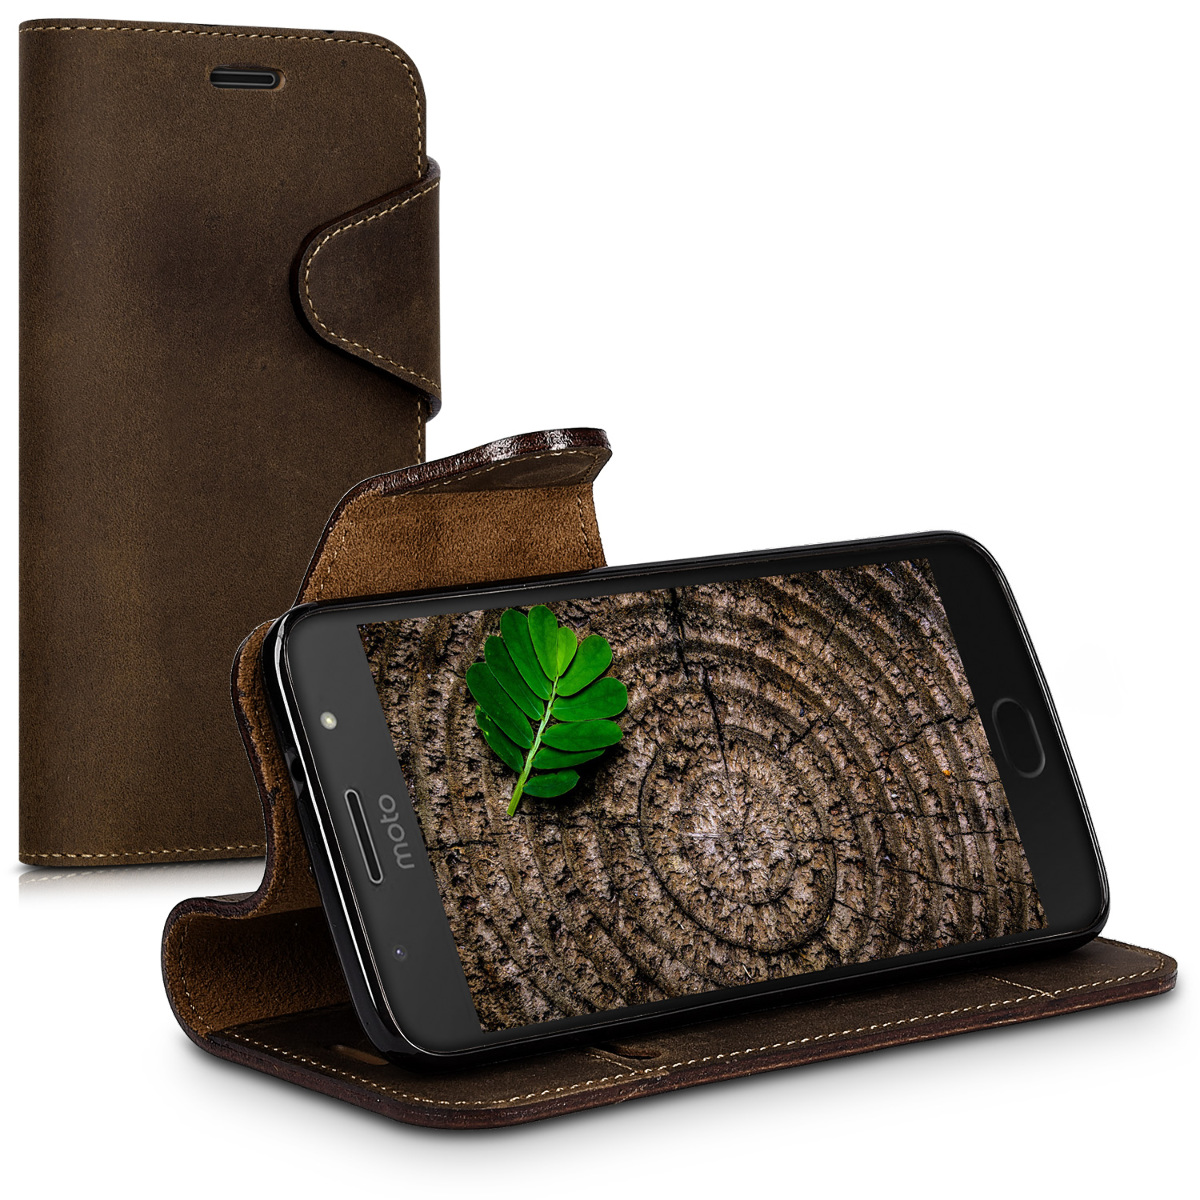 GENUINE-LEATHER-WALLET-CASE-FOR-MOTOROLA-MOTO-G5S-COVER-CARD-COMPARTMENT-CELL